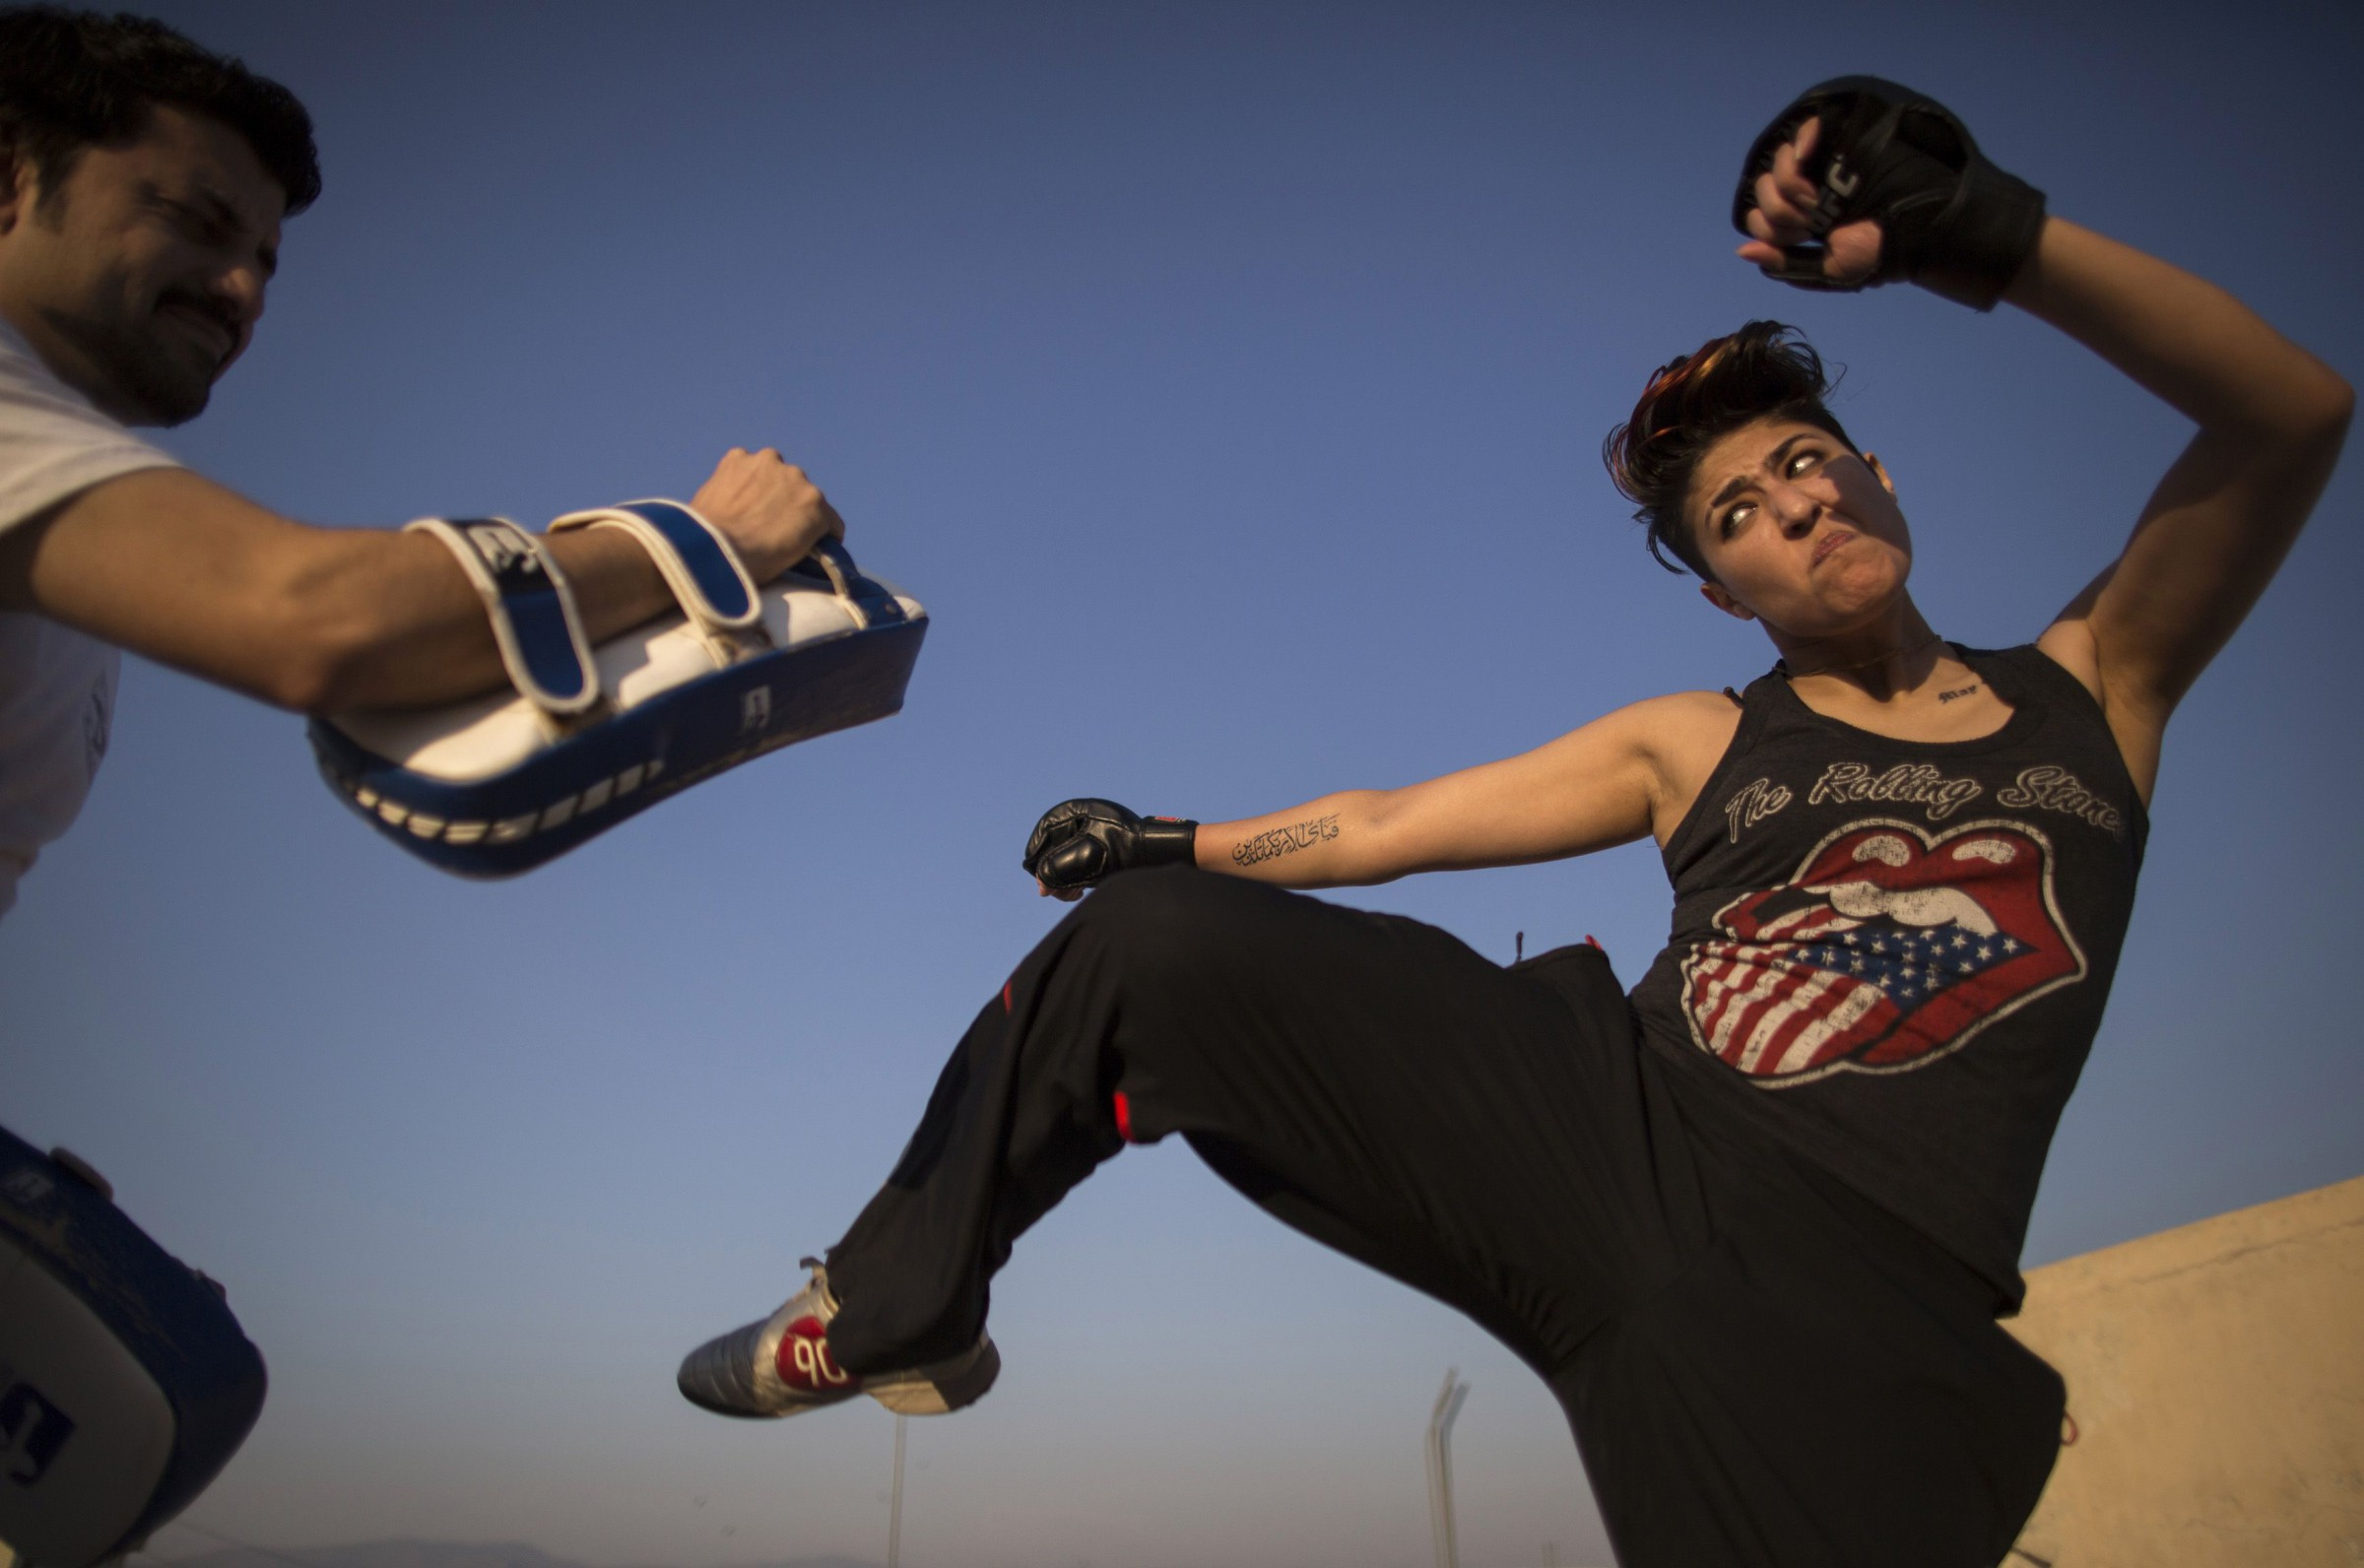 Interior designer Zahra Afridi (R) kicks a punching bag during a kickboxing training session at her home in Islamabad February 10, 2014. Afridi runs her own interior design company. Her most recent project was a Classic Rock Coffee cafe in Islamabad.